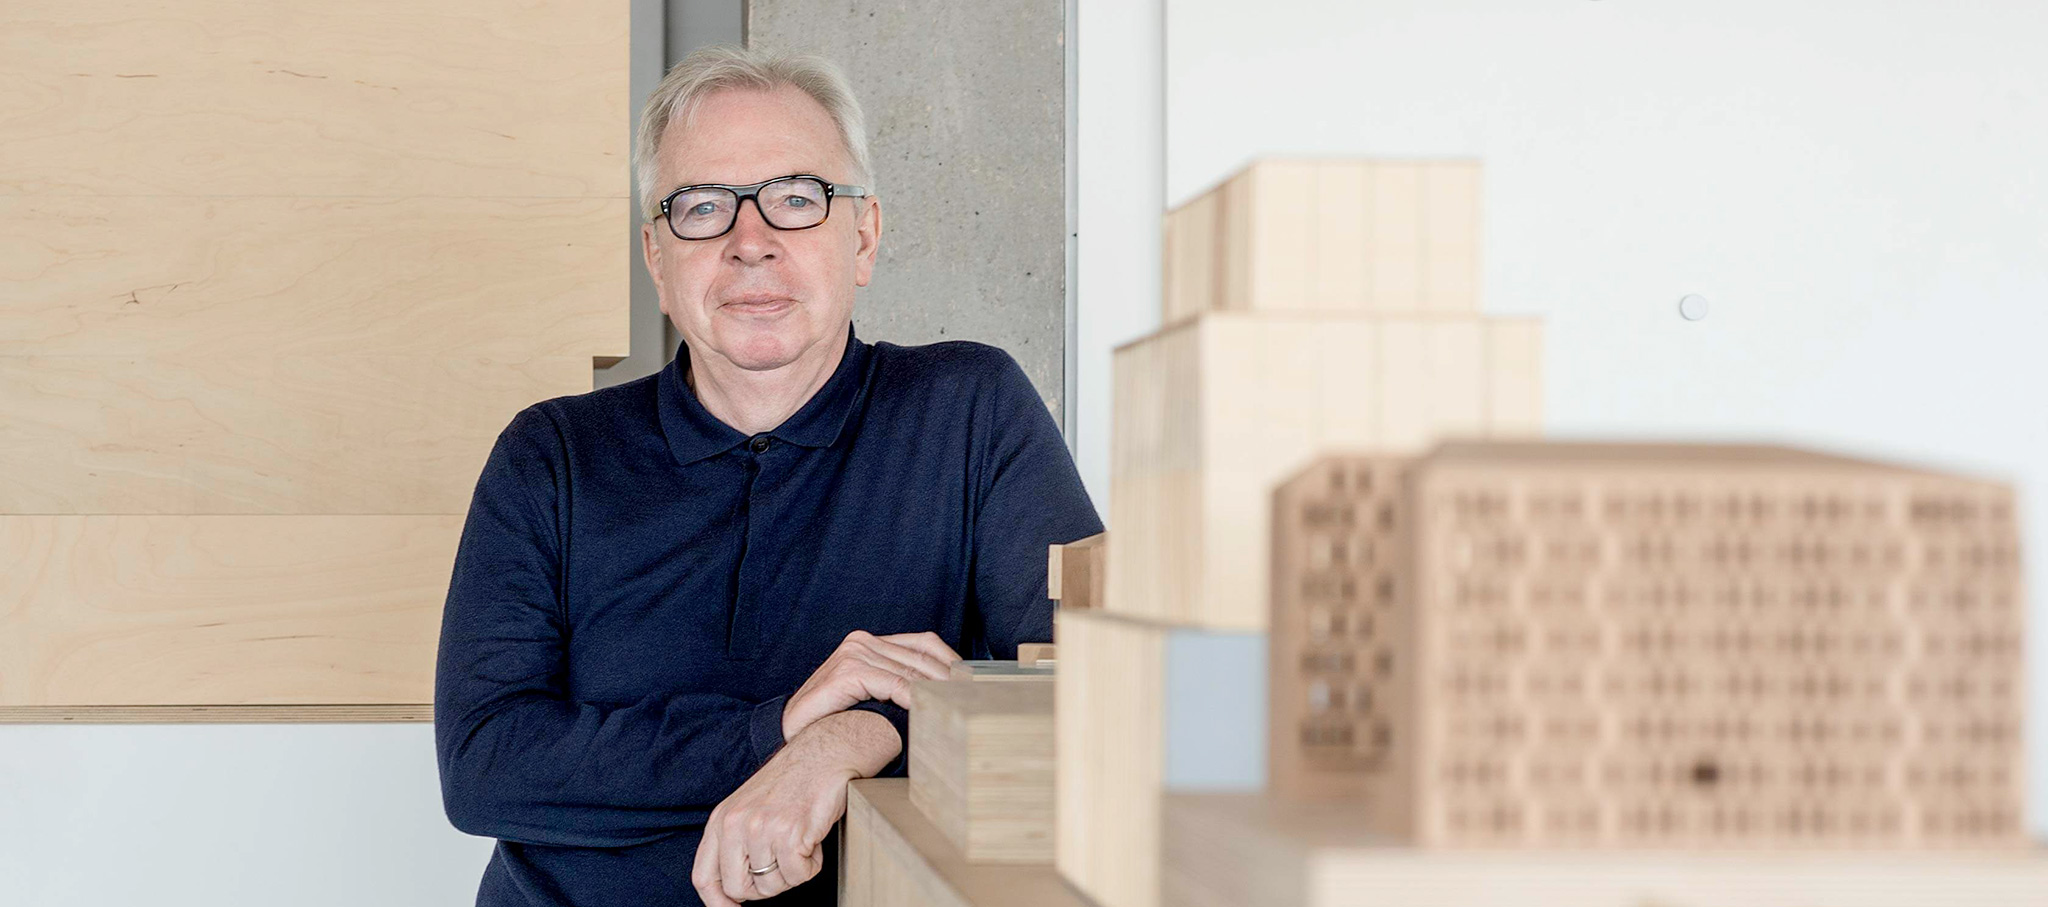 David Chipperfield. Fotografía por Rolex/Tina Ruisinger